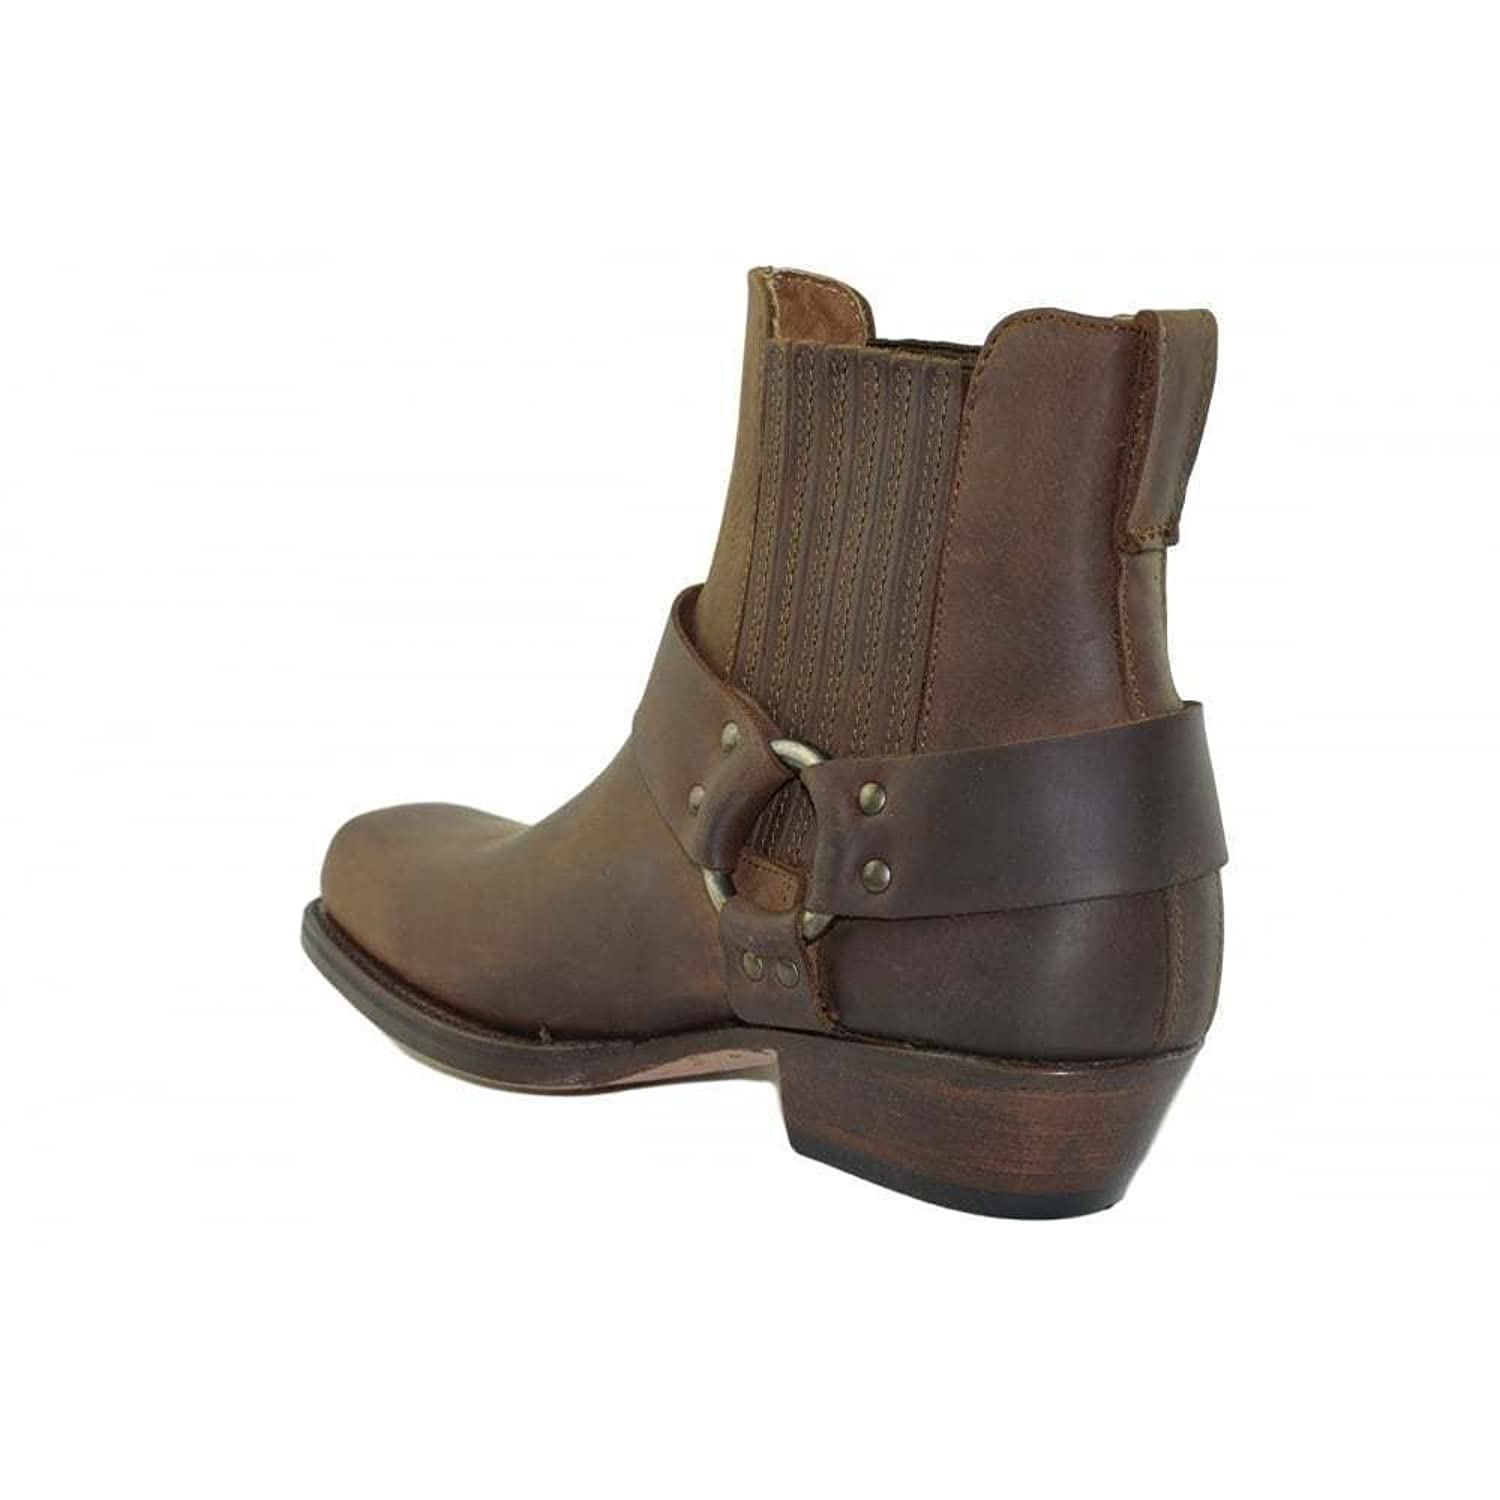 Loblan 096 Brown Leather Cowboy Ankle Boots Biker Western Square Chisel Toe  Boot: Amazon.co.uk: Shoes & Bags